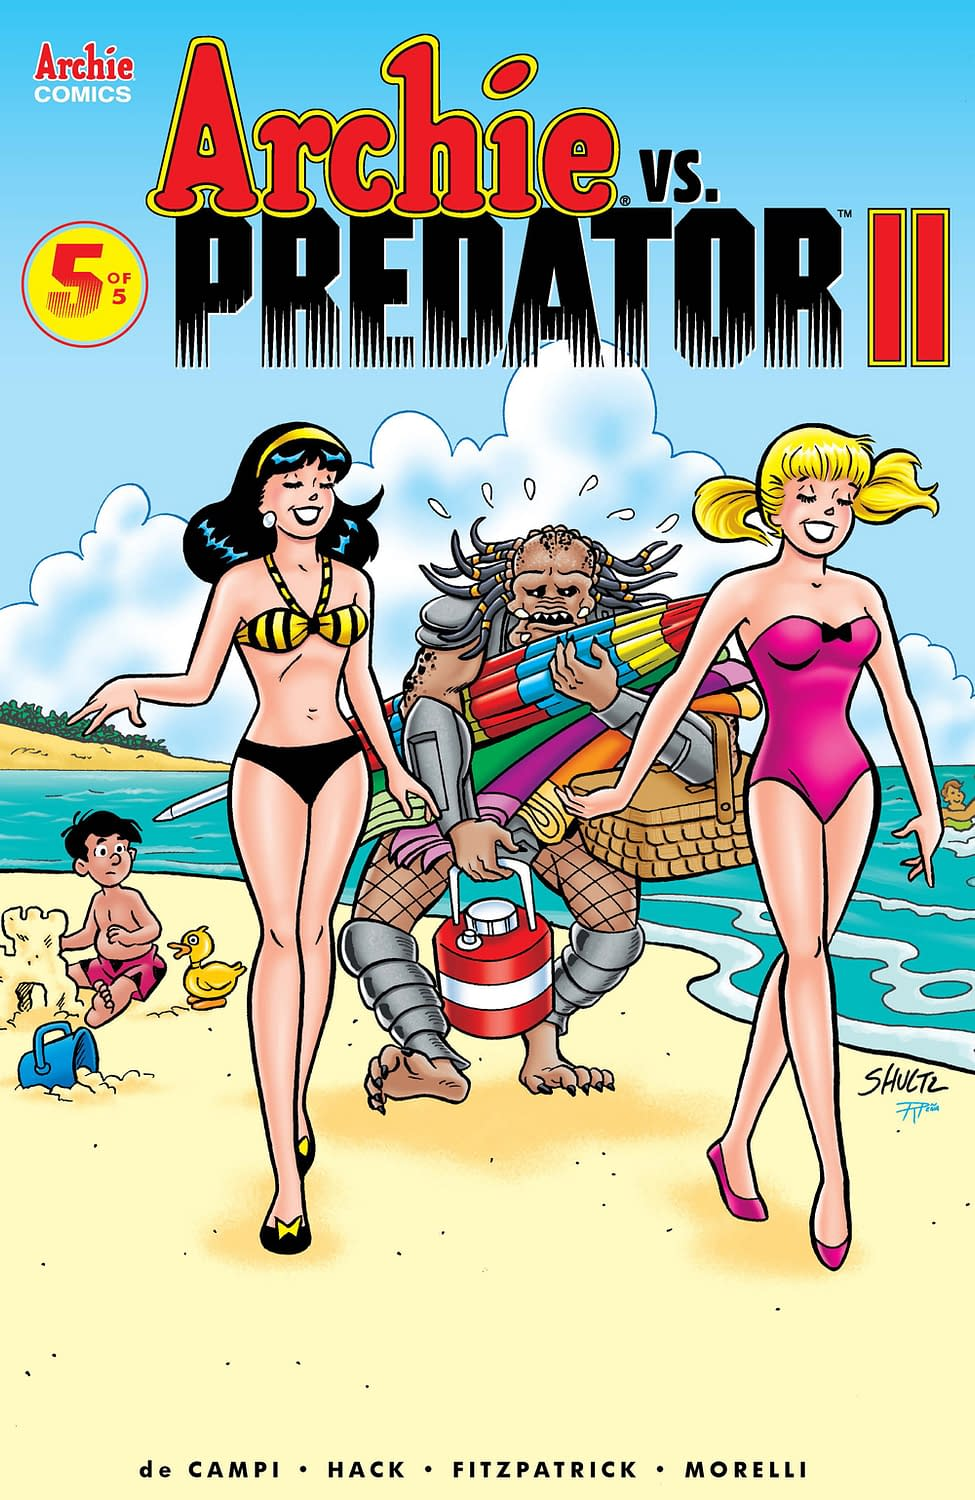 First Look at January's Archie vs. Predator 2 #5